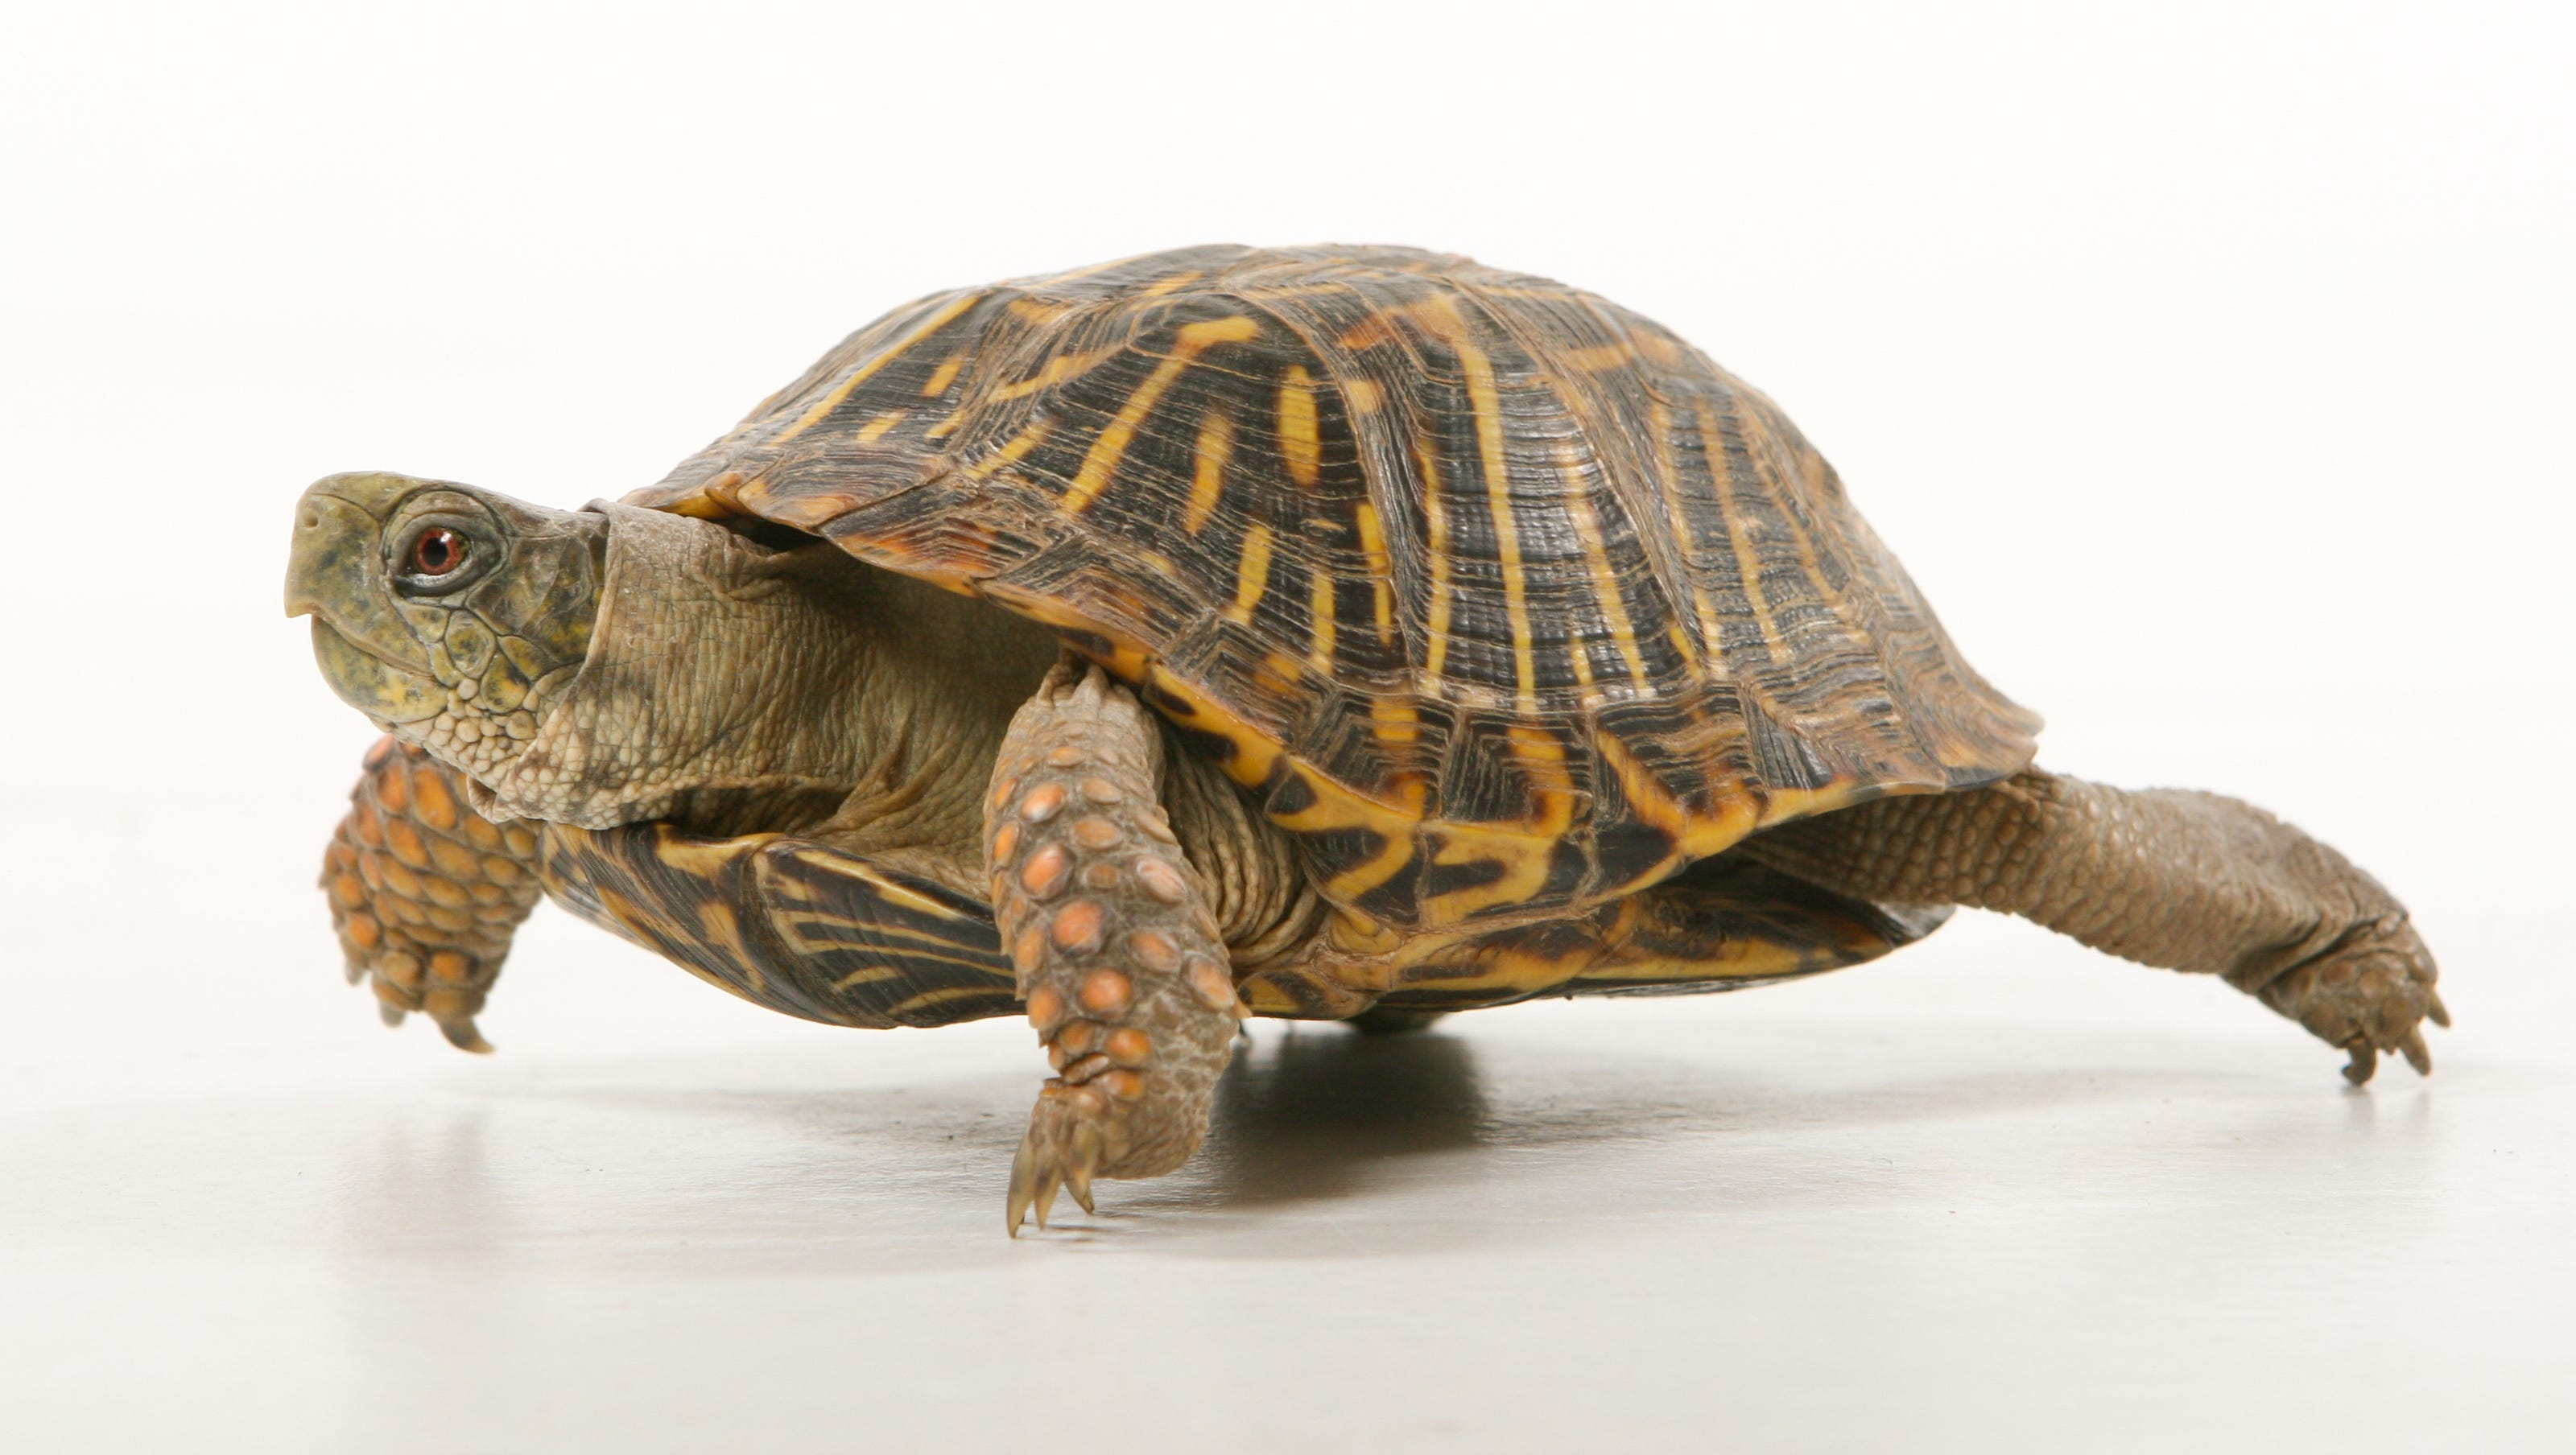 Pet turtles linked to salmonella outbreak in 13 states